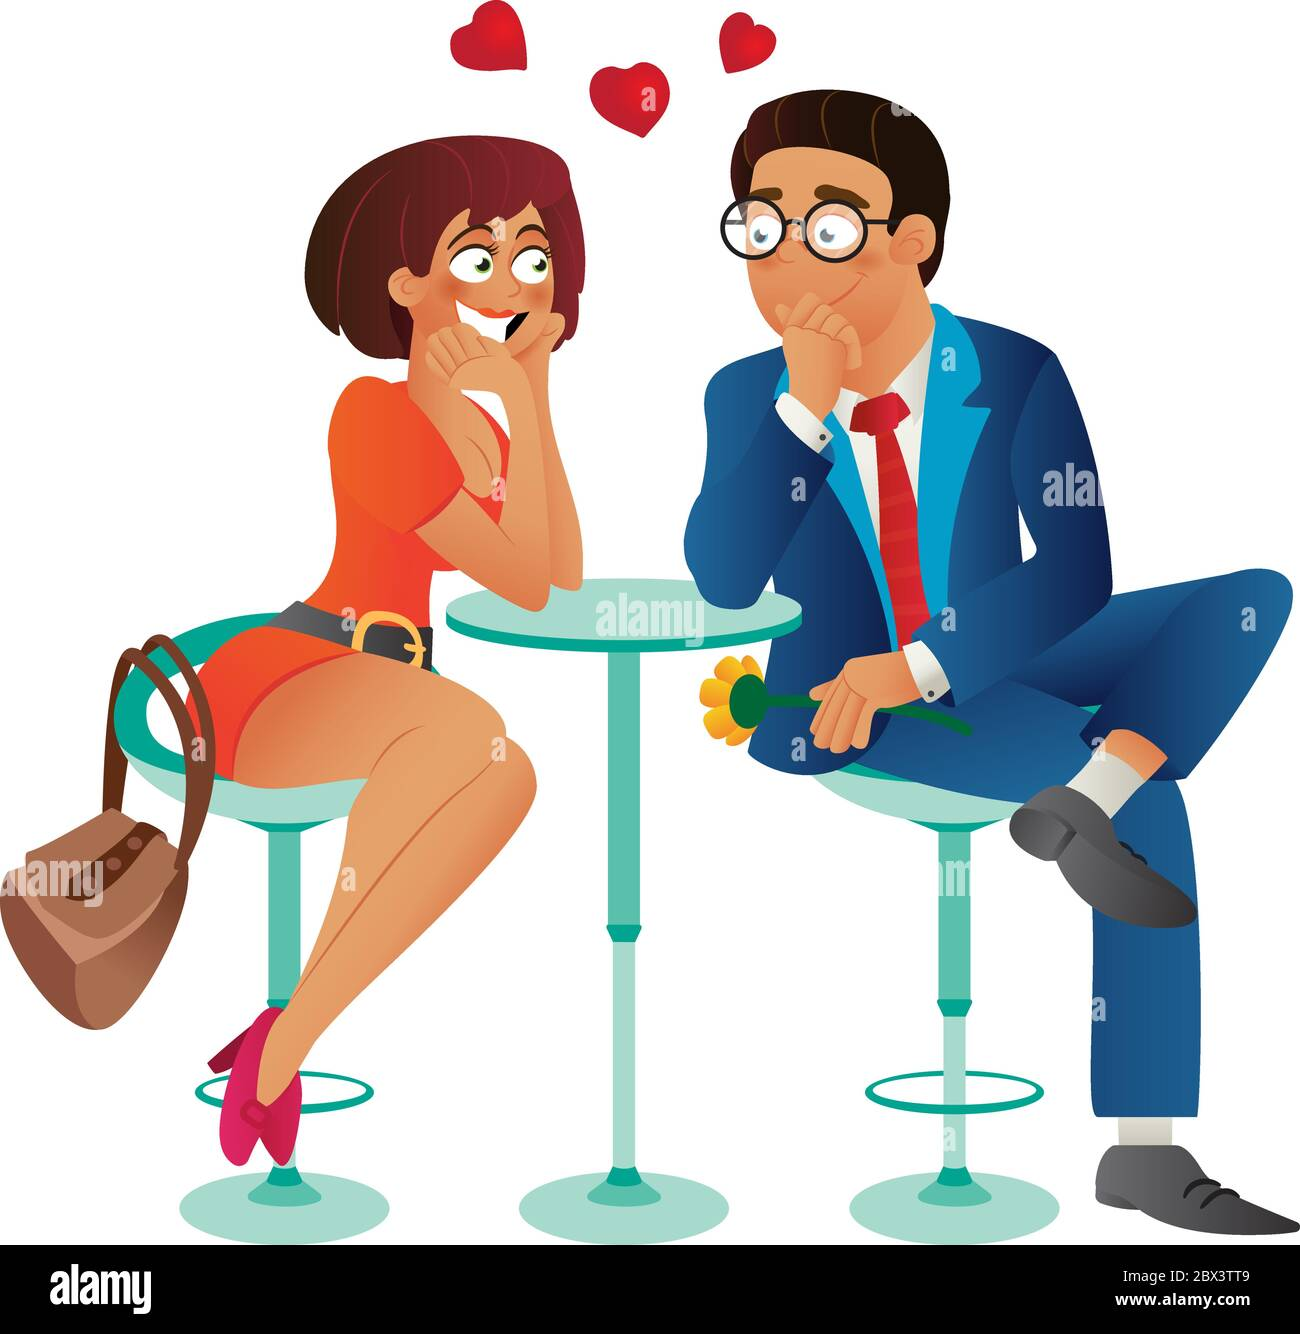 Speed Dating Romantic Love Event In Cafe Young Business Woman And Man Couple On A Date Talking Meeting Flirt And Fall In Love Flat Cartoon Vecto Stock Vector Image Art